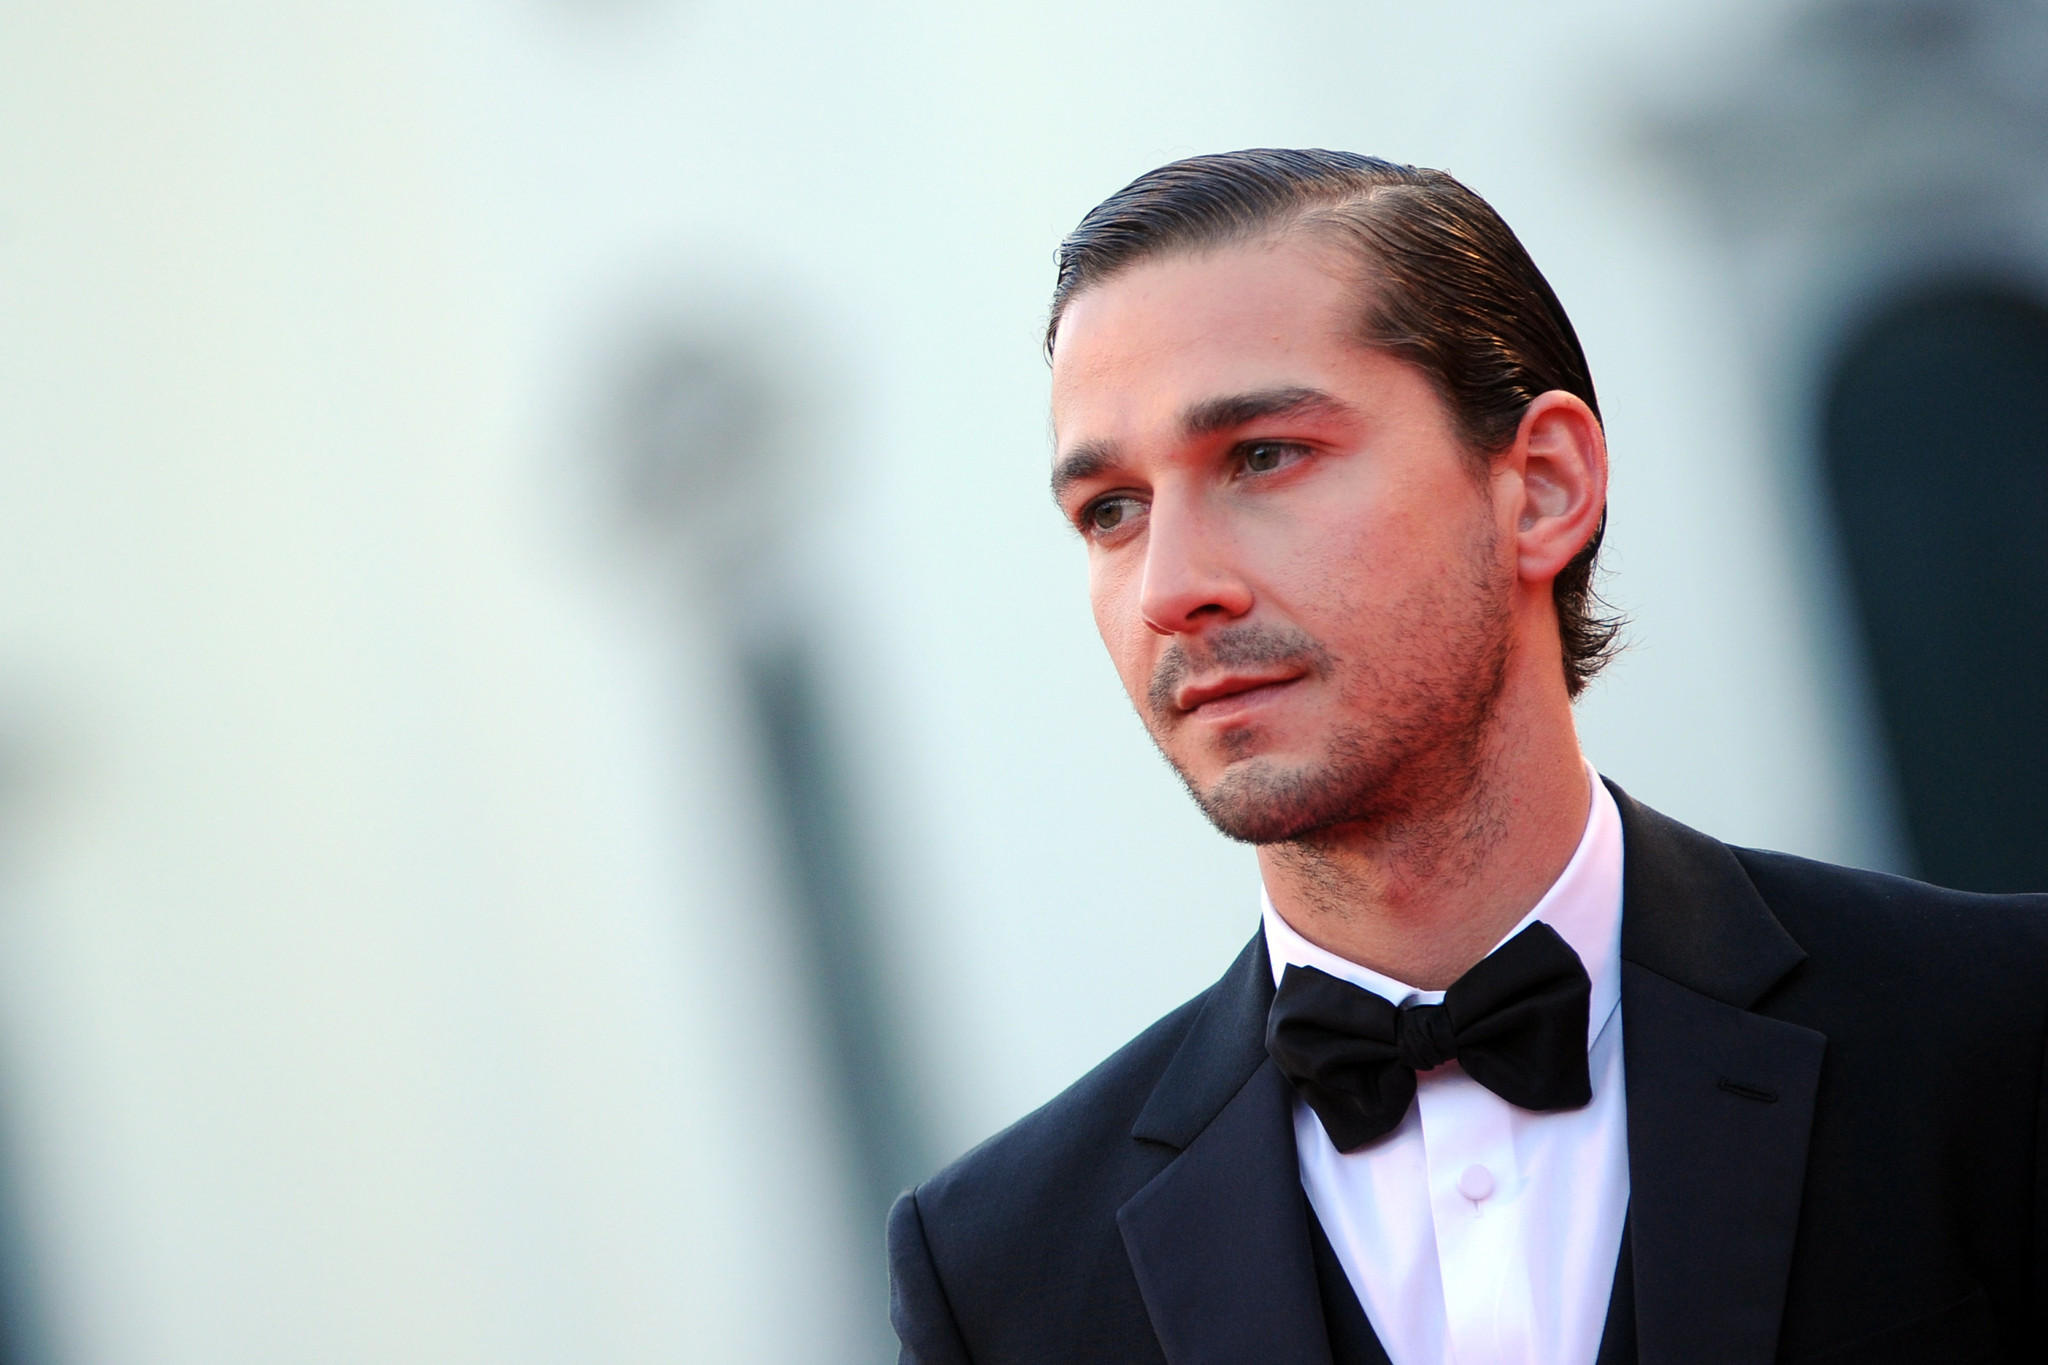 chi-shia-labeouf-could-face-legal-action-over--001